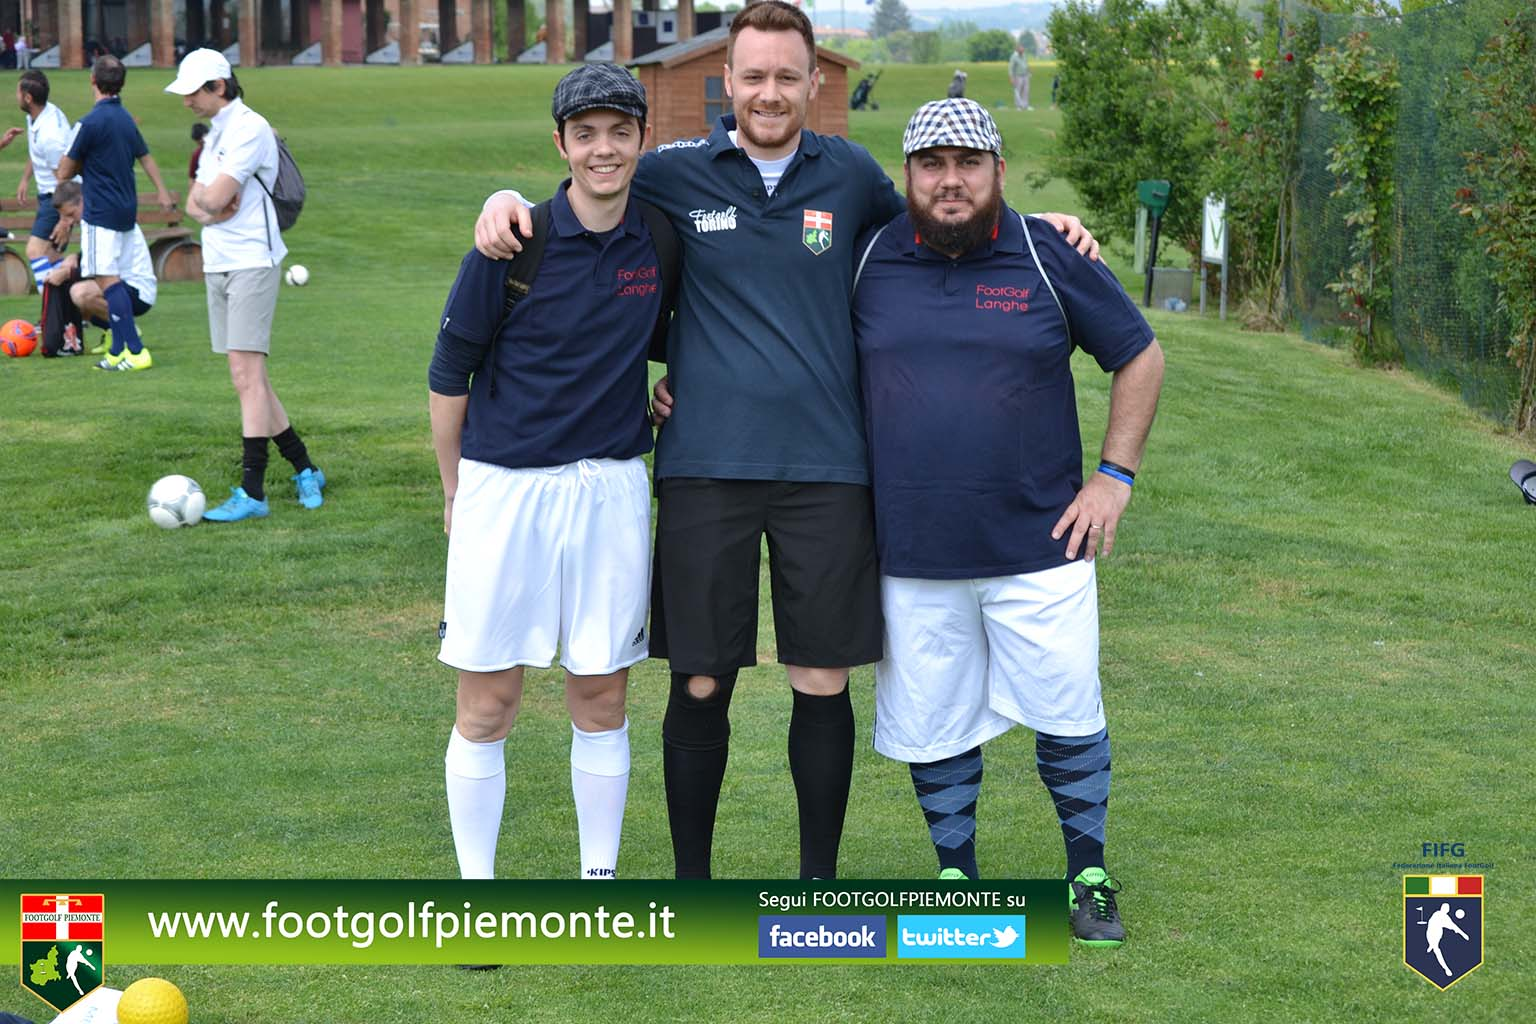 FOTO 9 Regions' Cup Footgolf Piemonte 2016 Golf Città di Asti (At) 30apr16-77